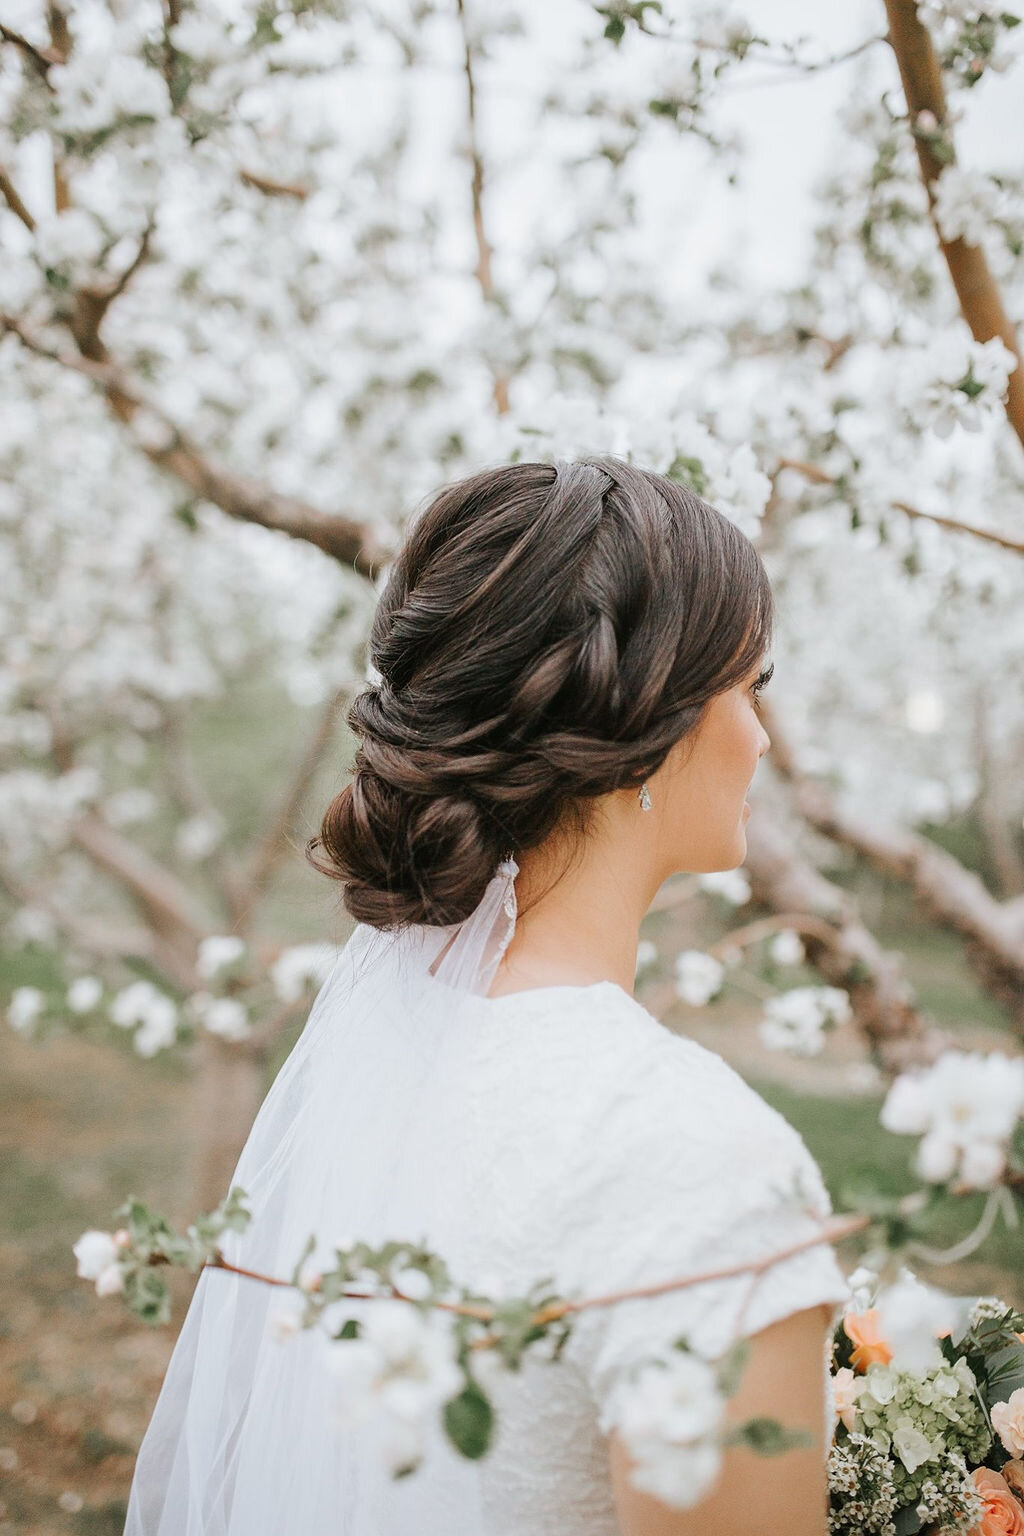 bridal-hairstyle-updo-wedding-trends-2020-effortless-braided-updo-look-for-the-light-photo-video